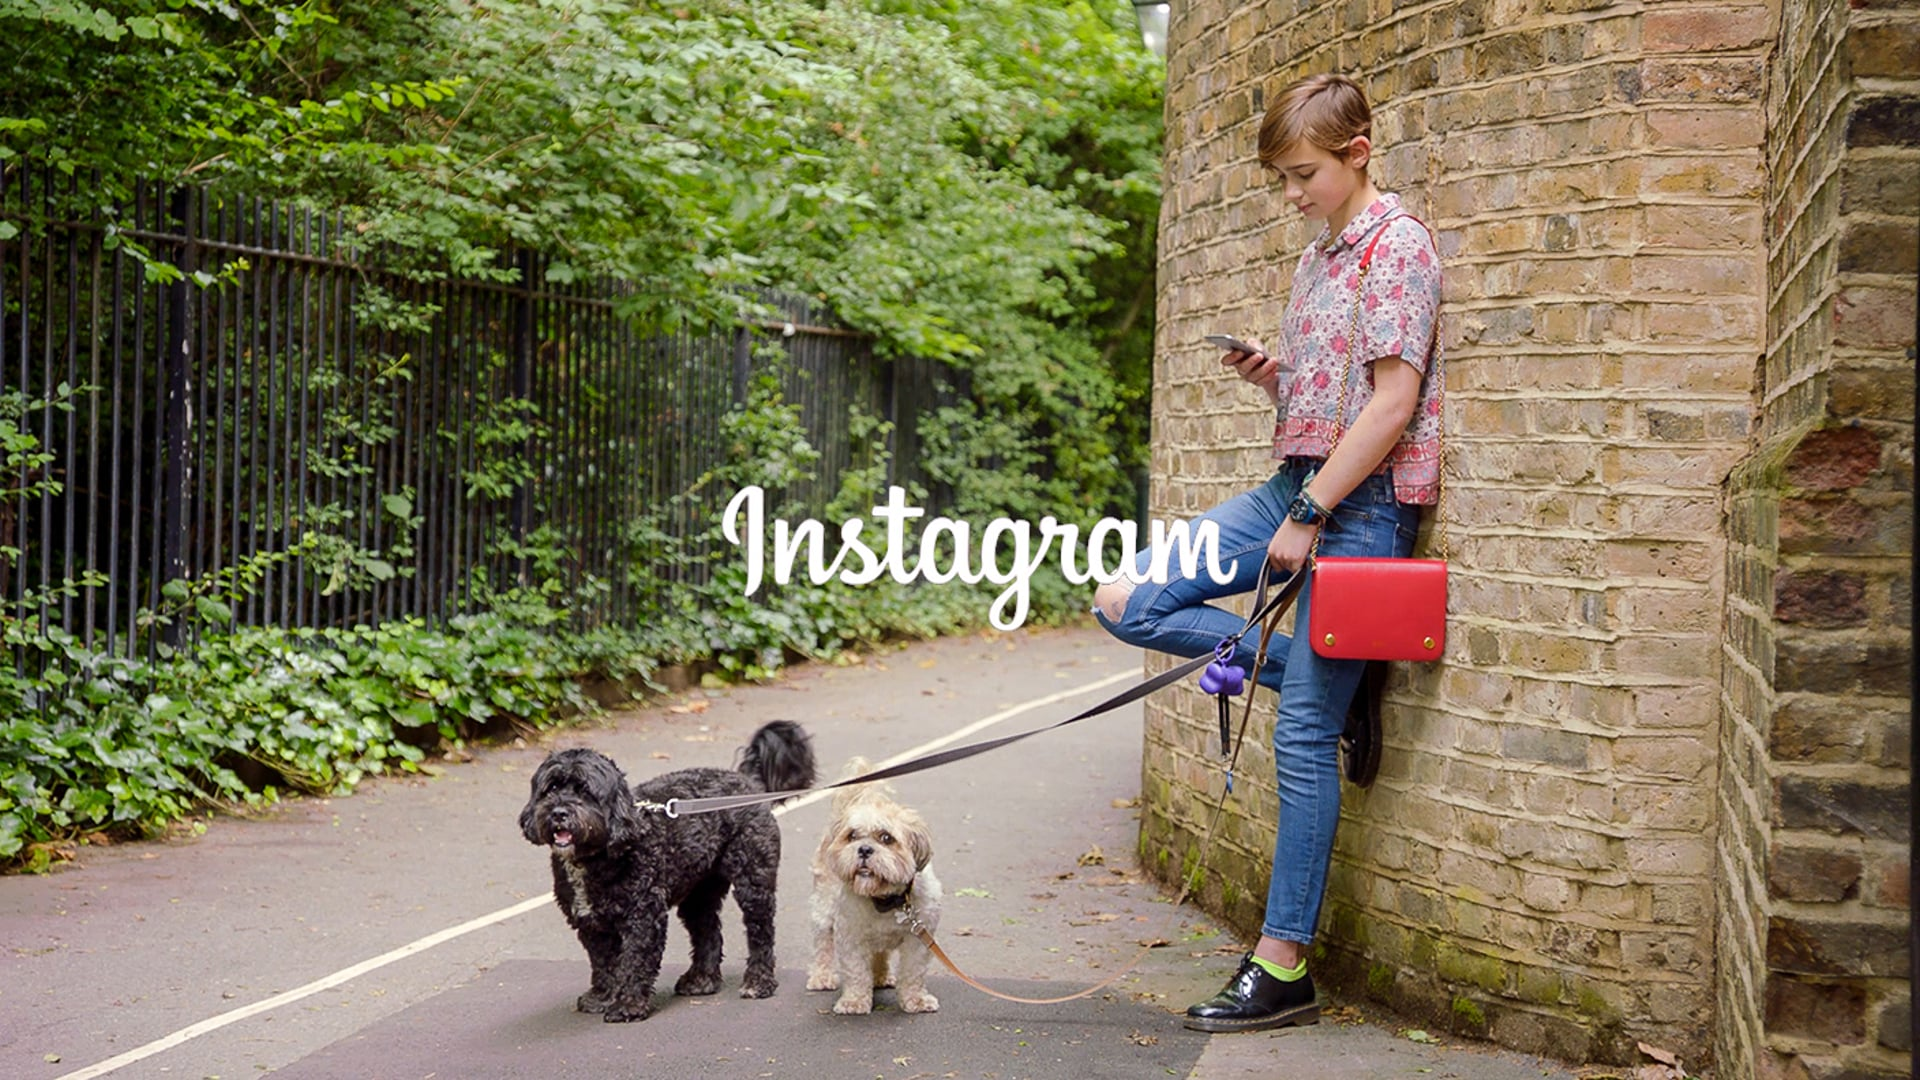 Mulberry on Instagram